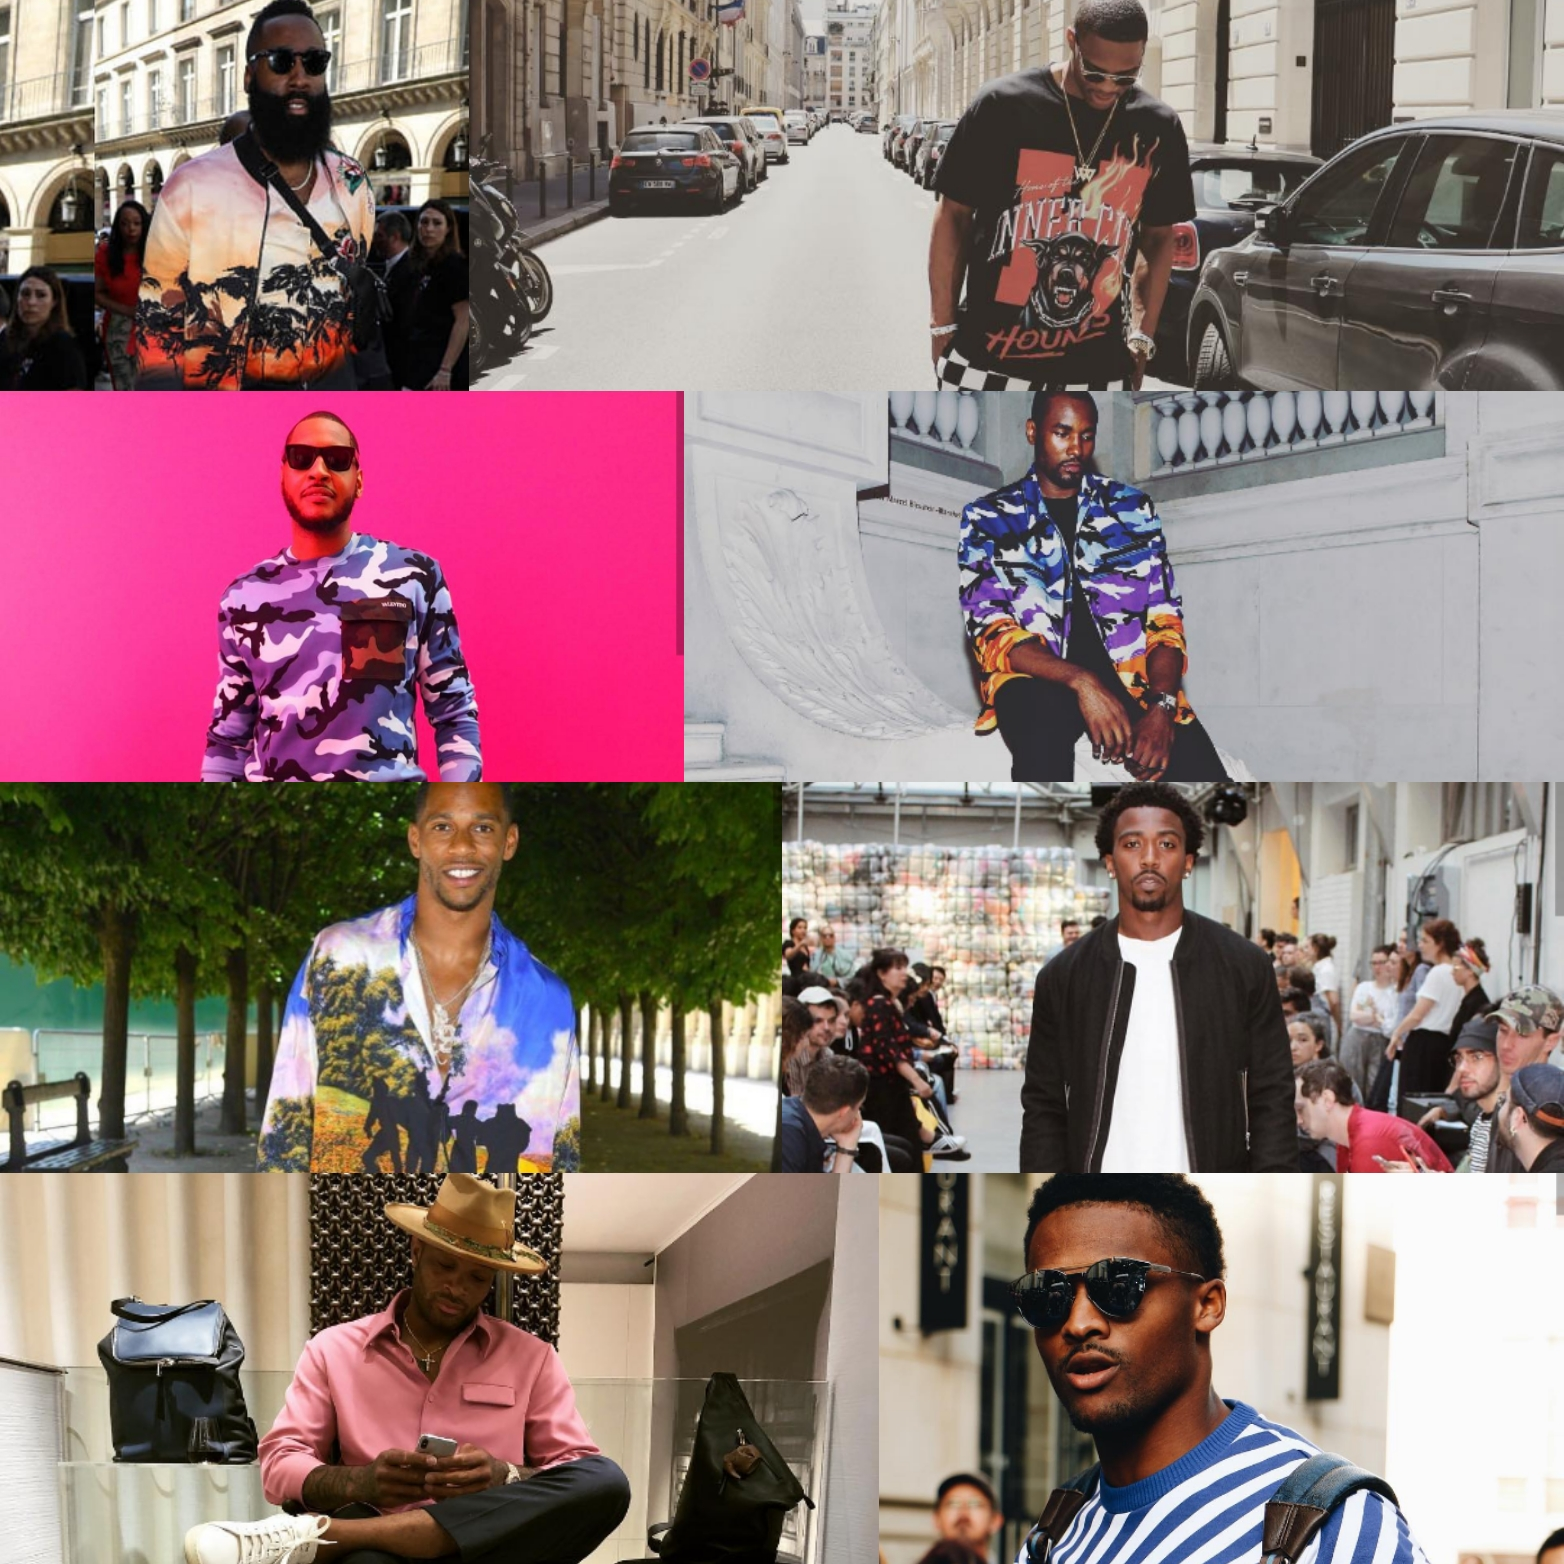 8 BEST-DRESSED ATHLETES AT PARIS FASHION WEEK: James Harden, Russell Westbrook, Carmelo Anthony & More